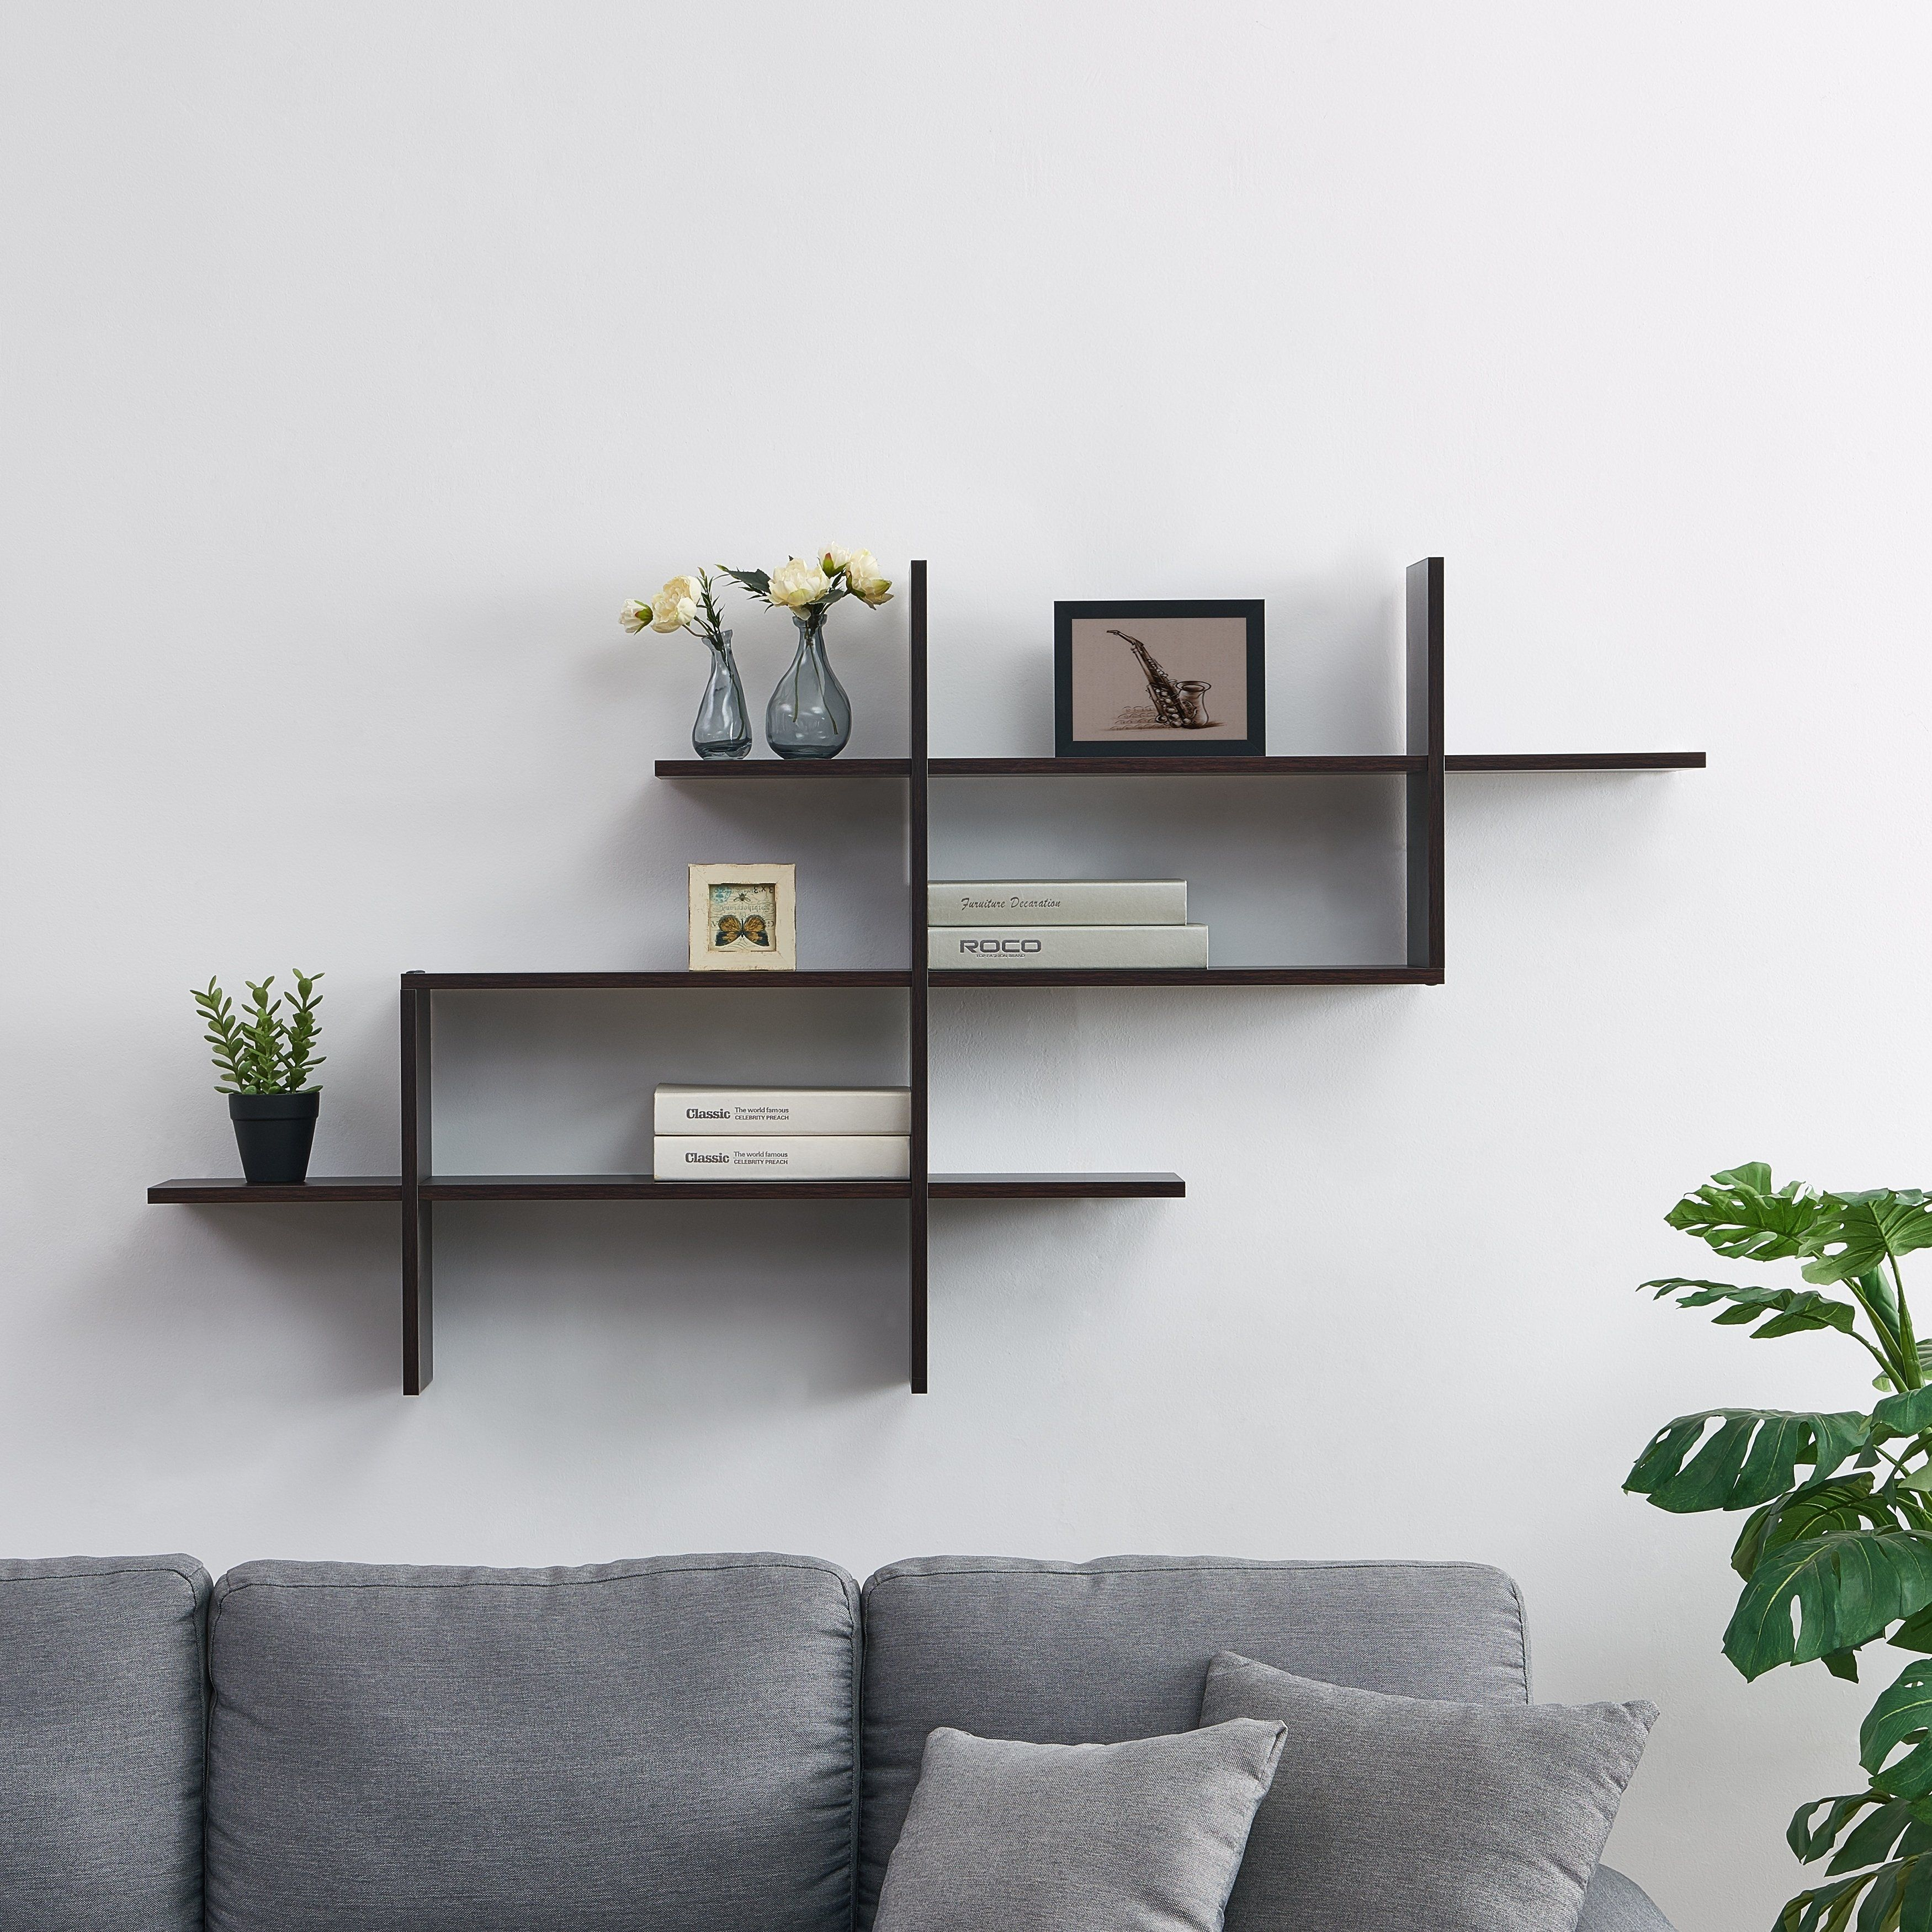 3 Tier Wall Mount Floating Ladder Shelf With Criss Cross Design Walnt Brown Mdf In 2020 Wall Shelves Living Room Modern Wall Shelf Wall Shelf Decor